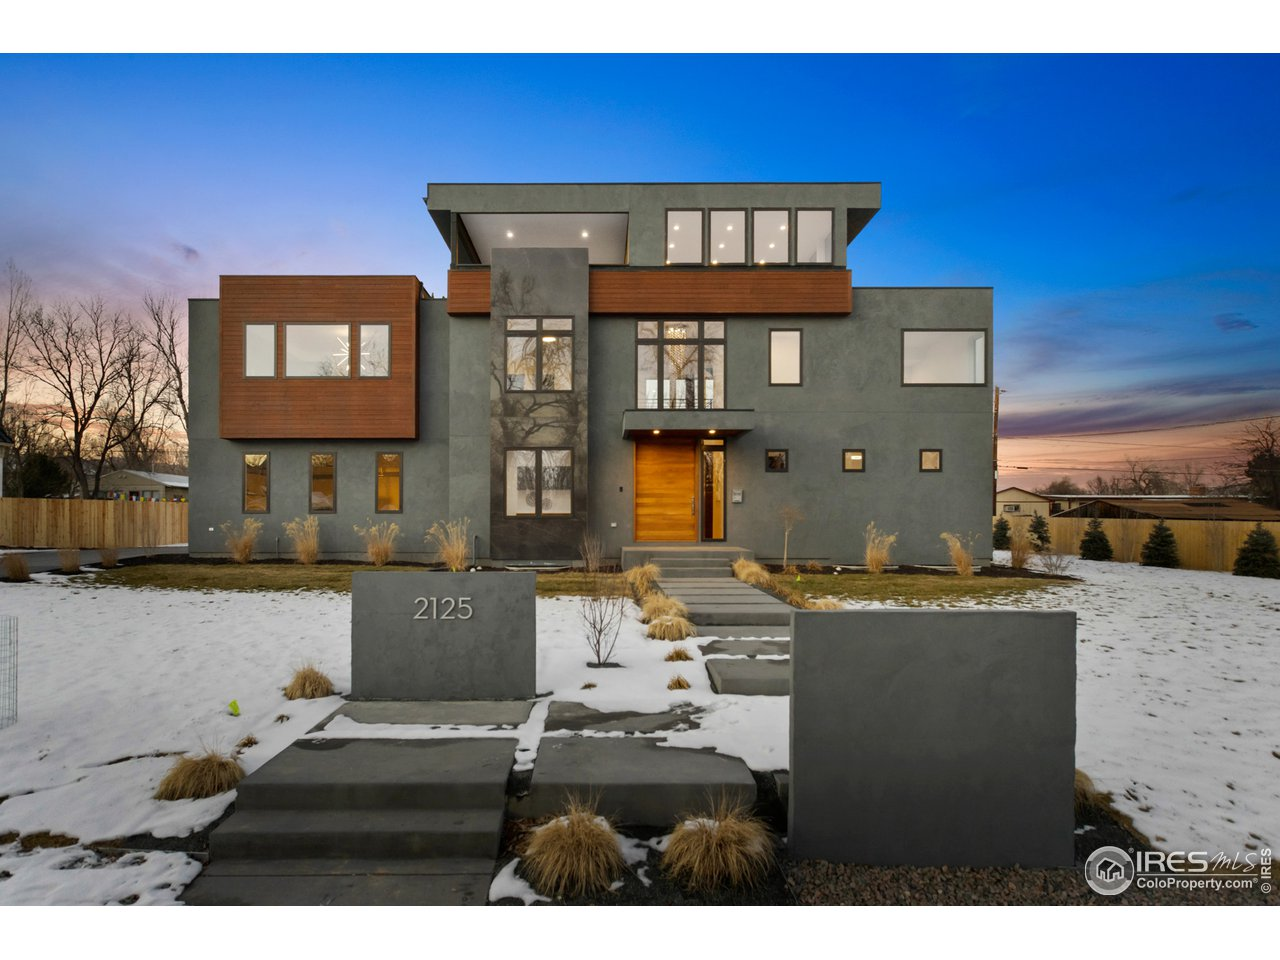 2125 Tamarack Ave, Boulder CO 80304